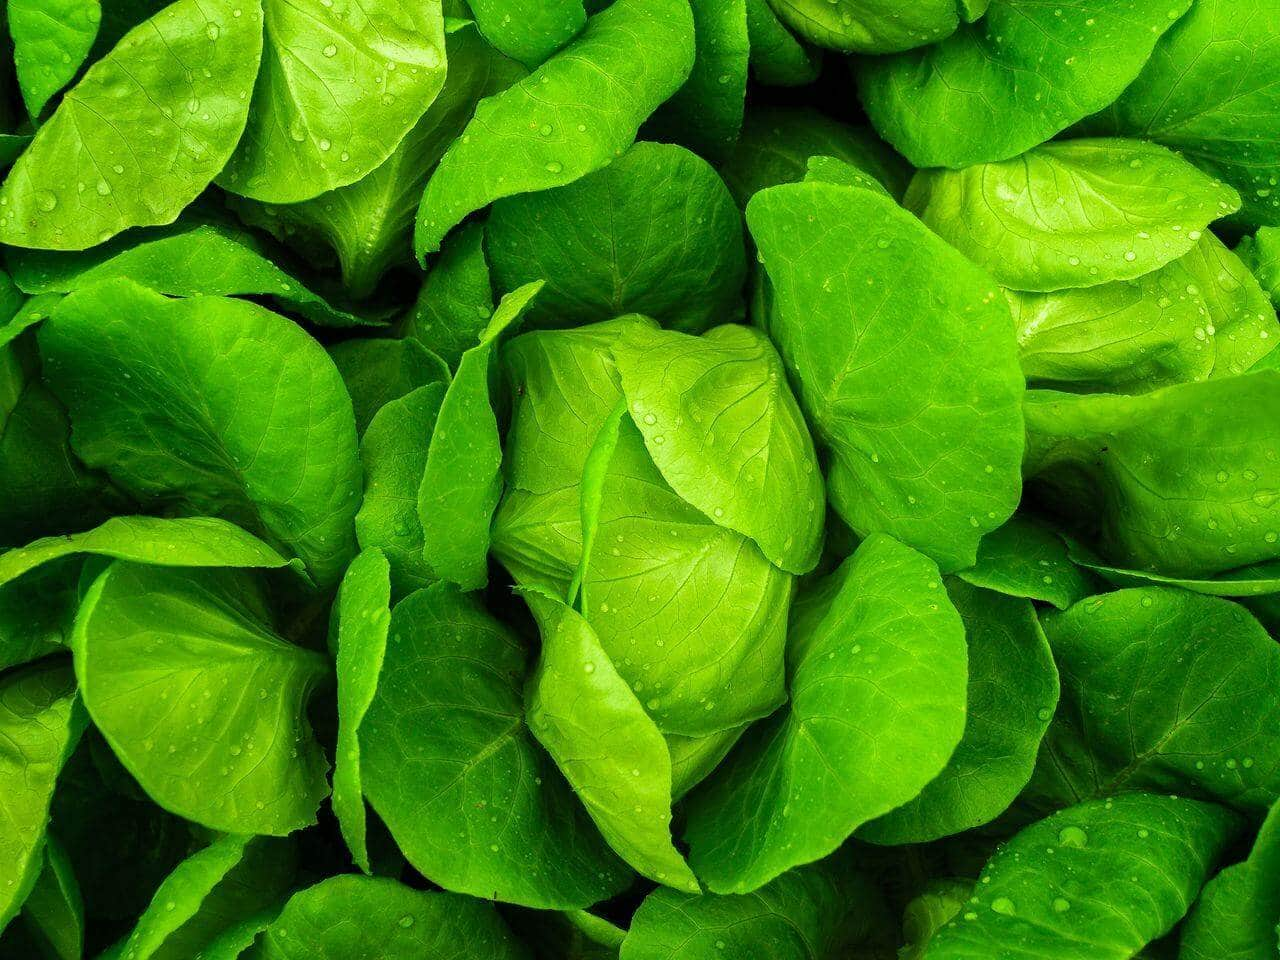 Lettuce Best Vegetables to Juice